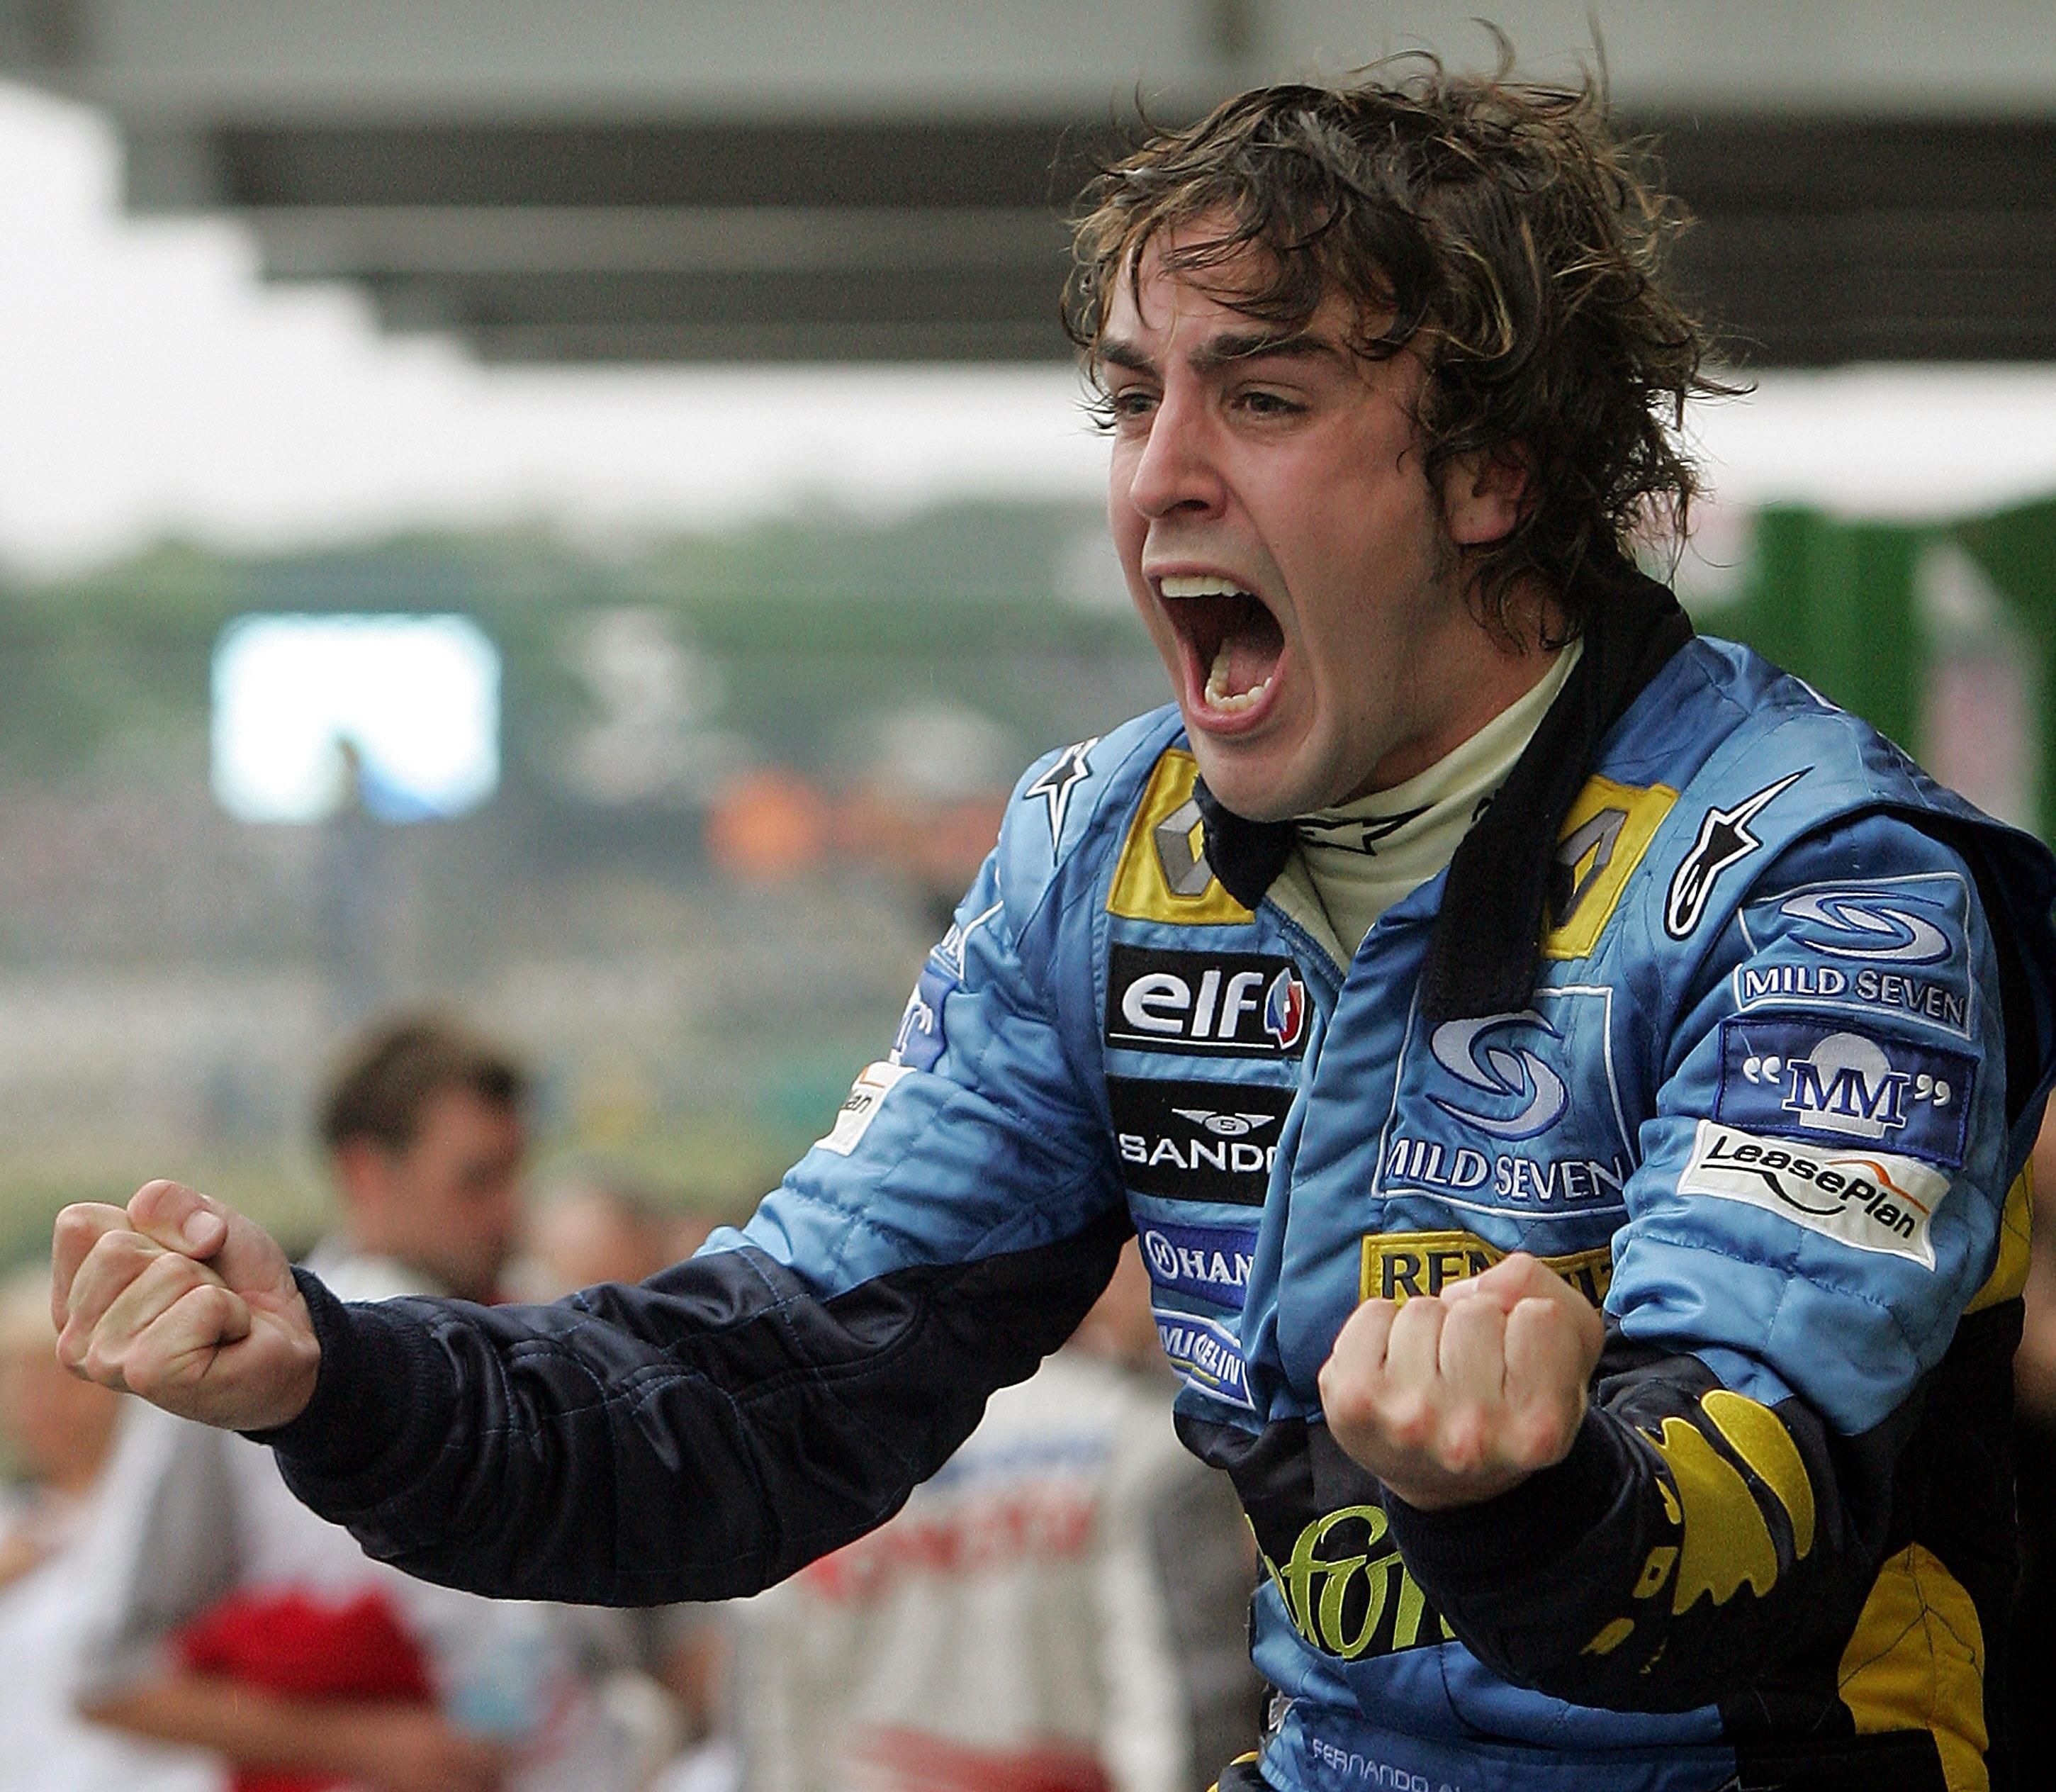 Fernando Alonso won his first world championship with Renault in 2005